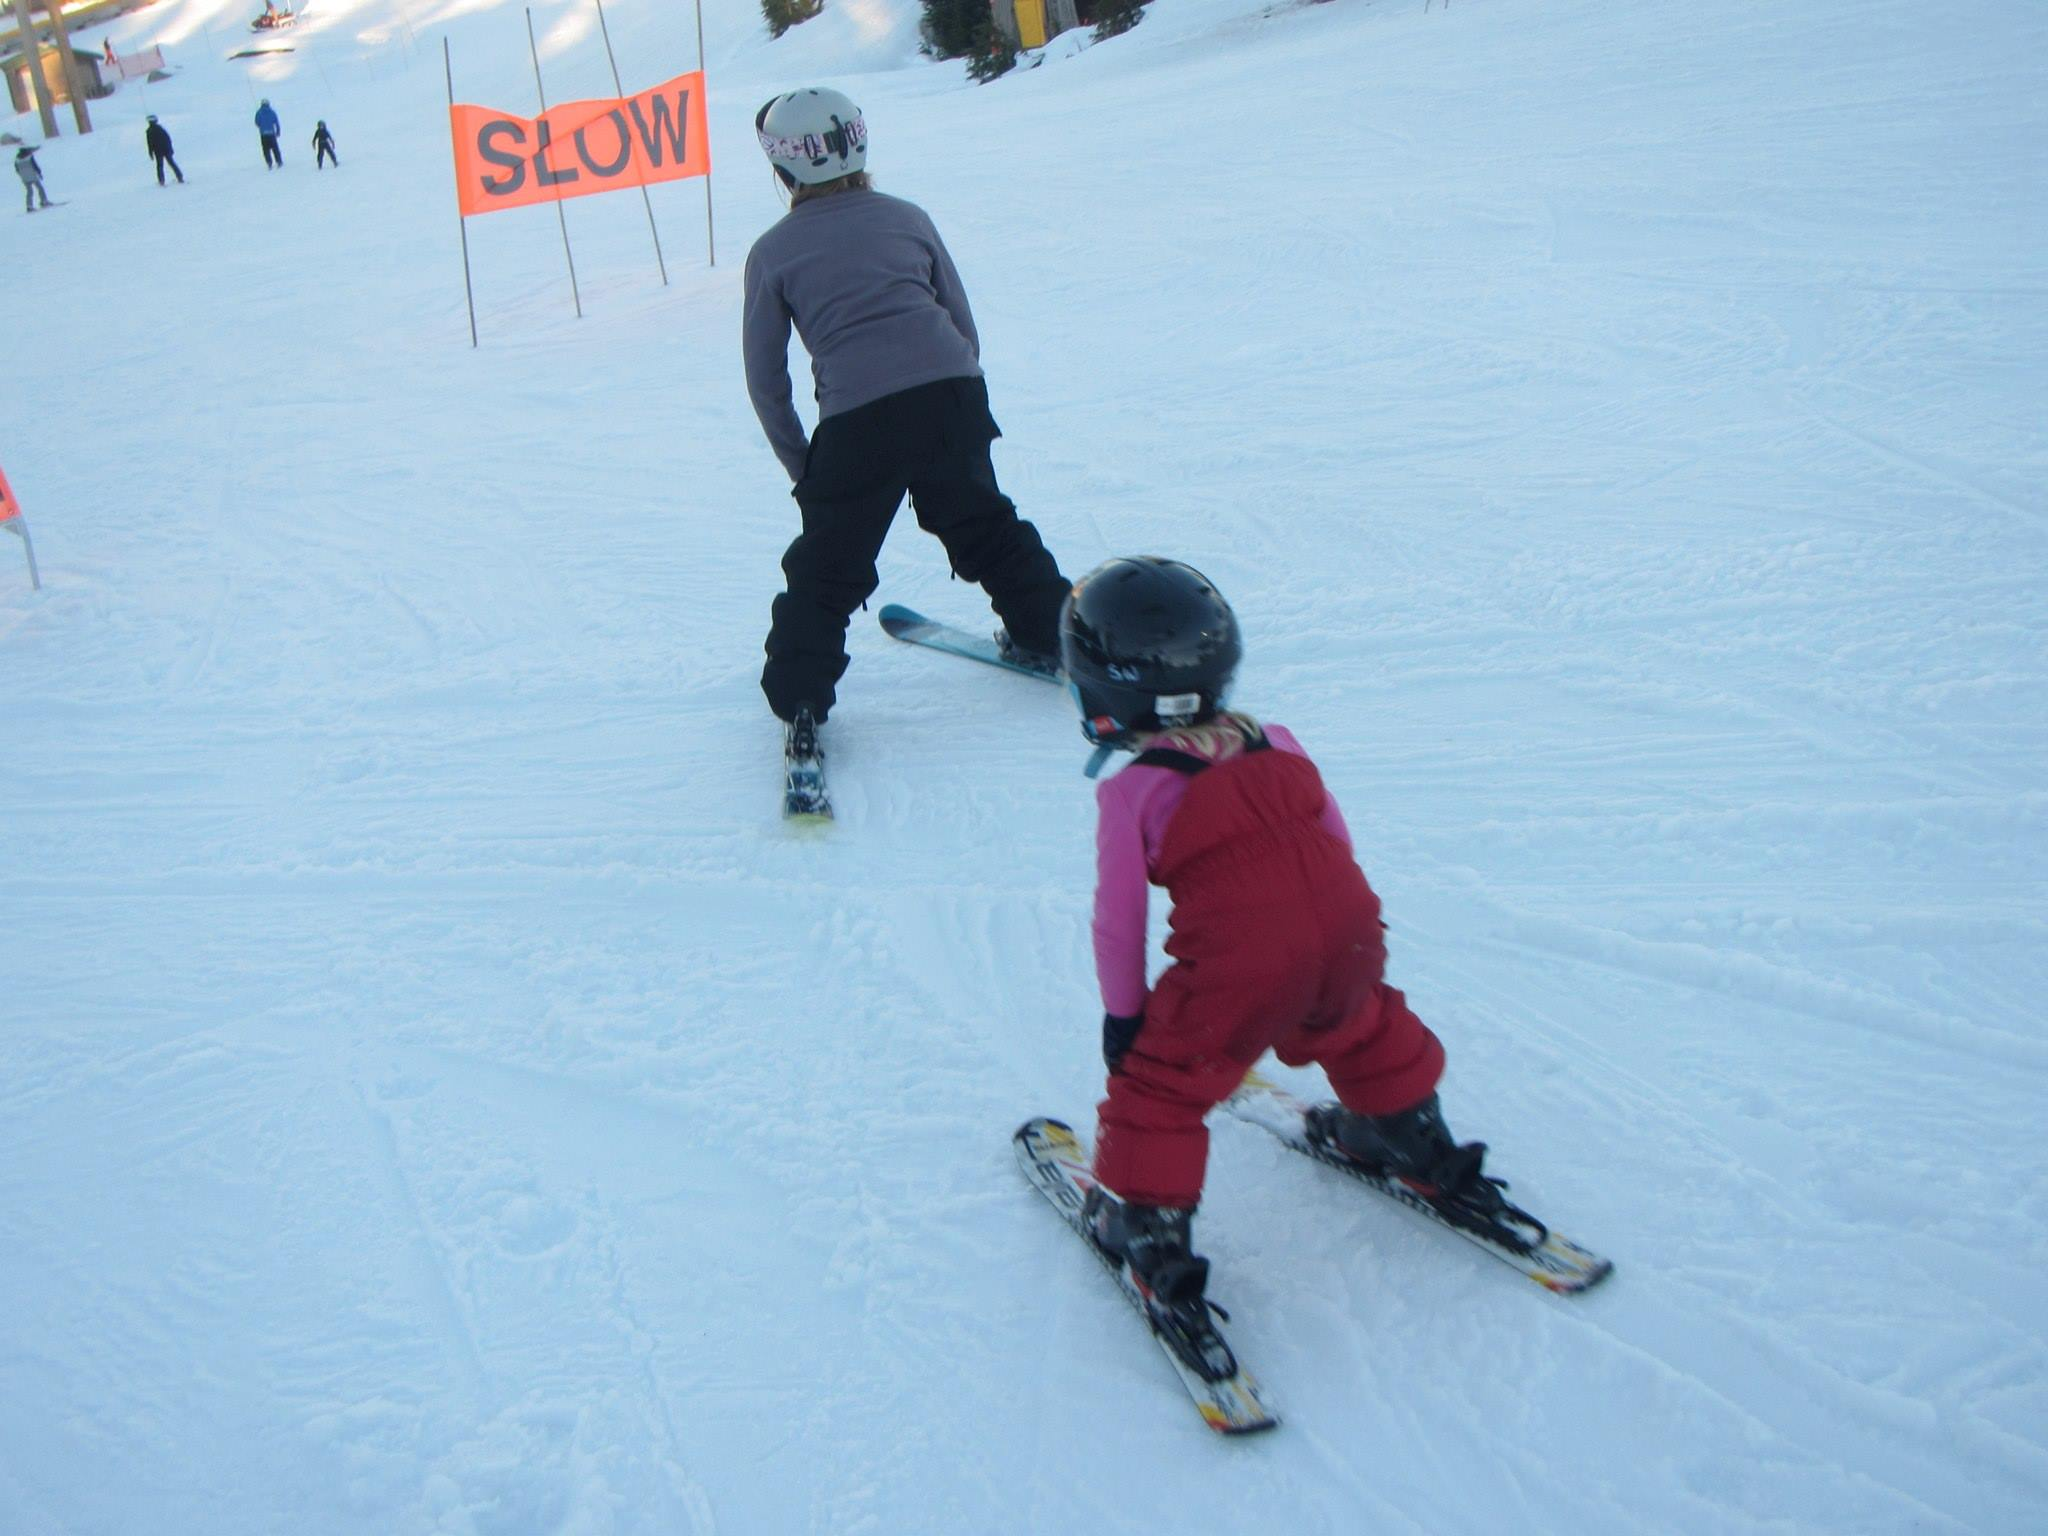 charlotte teaching a 4-year old beginner skier